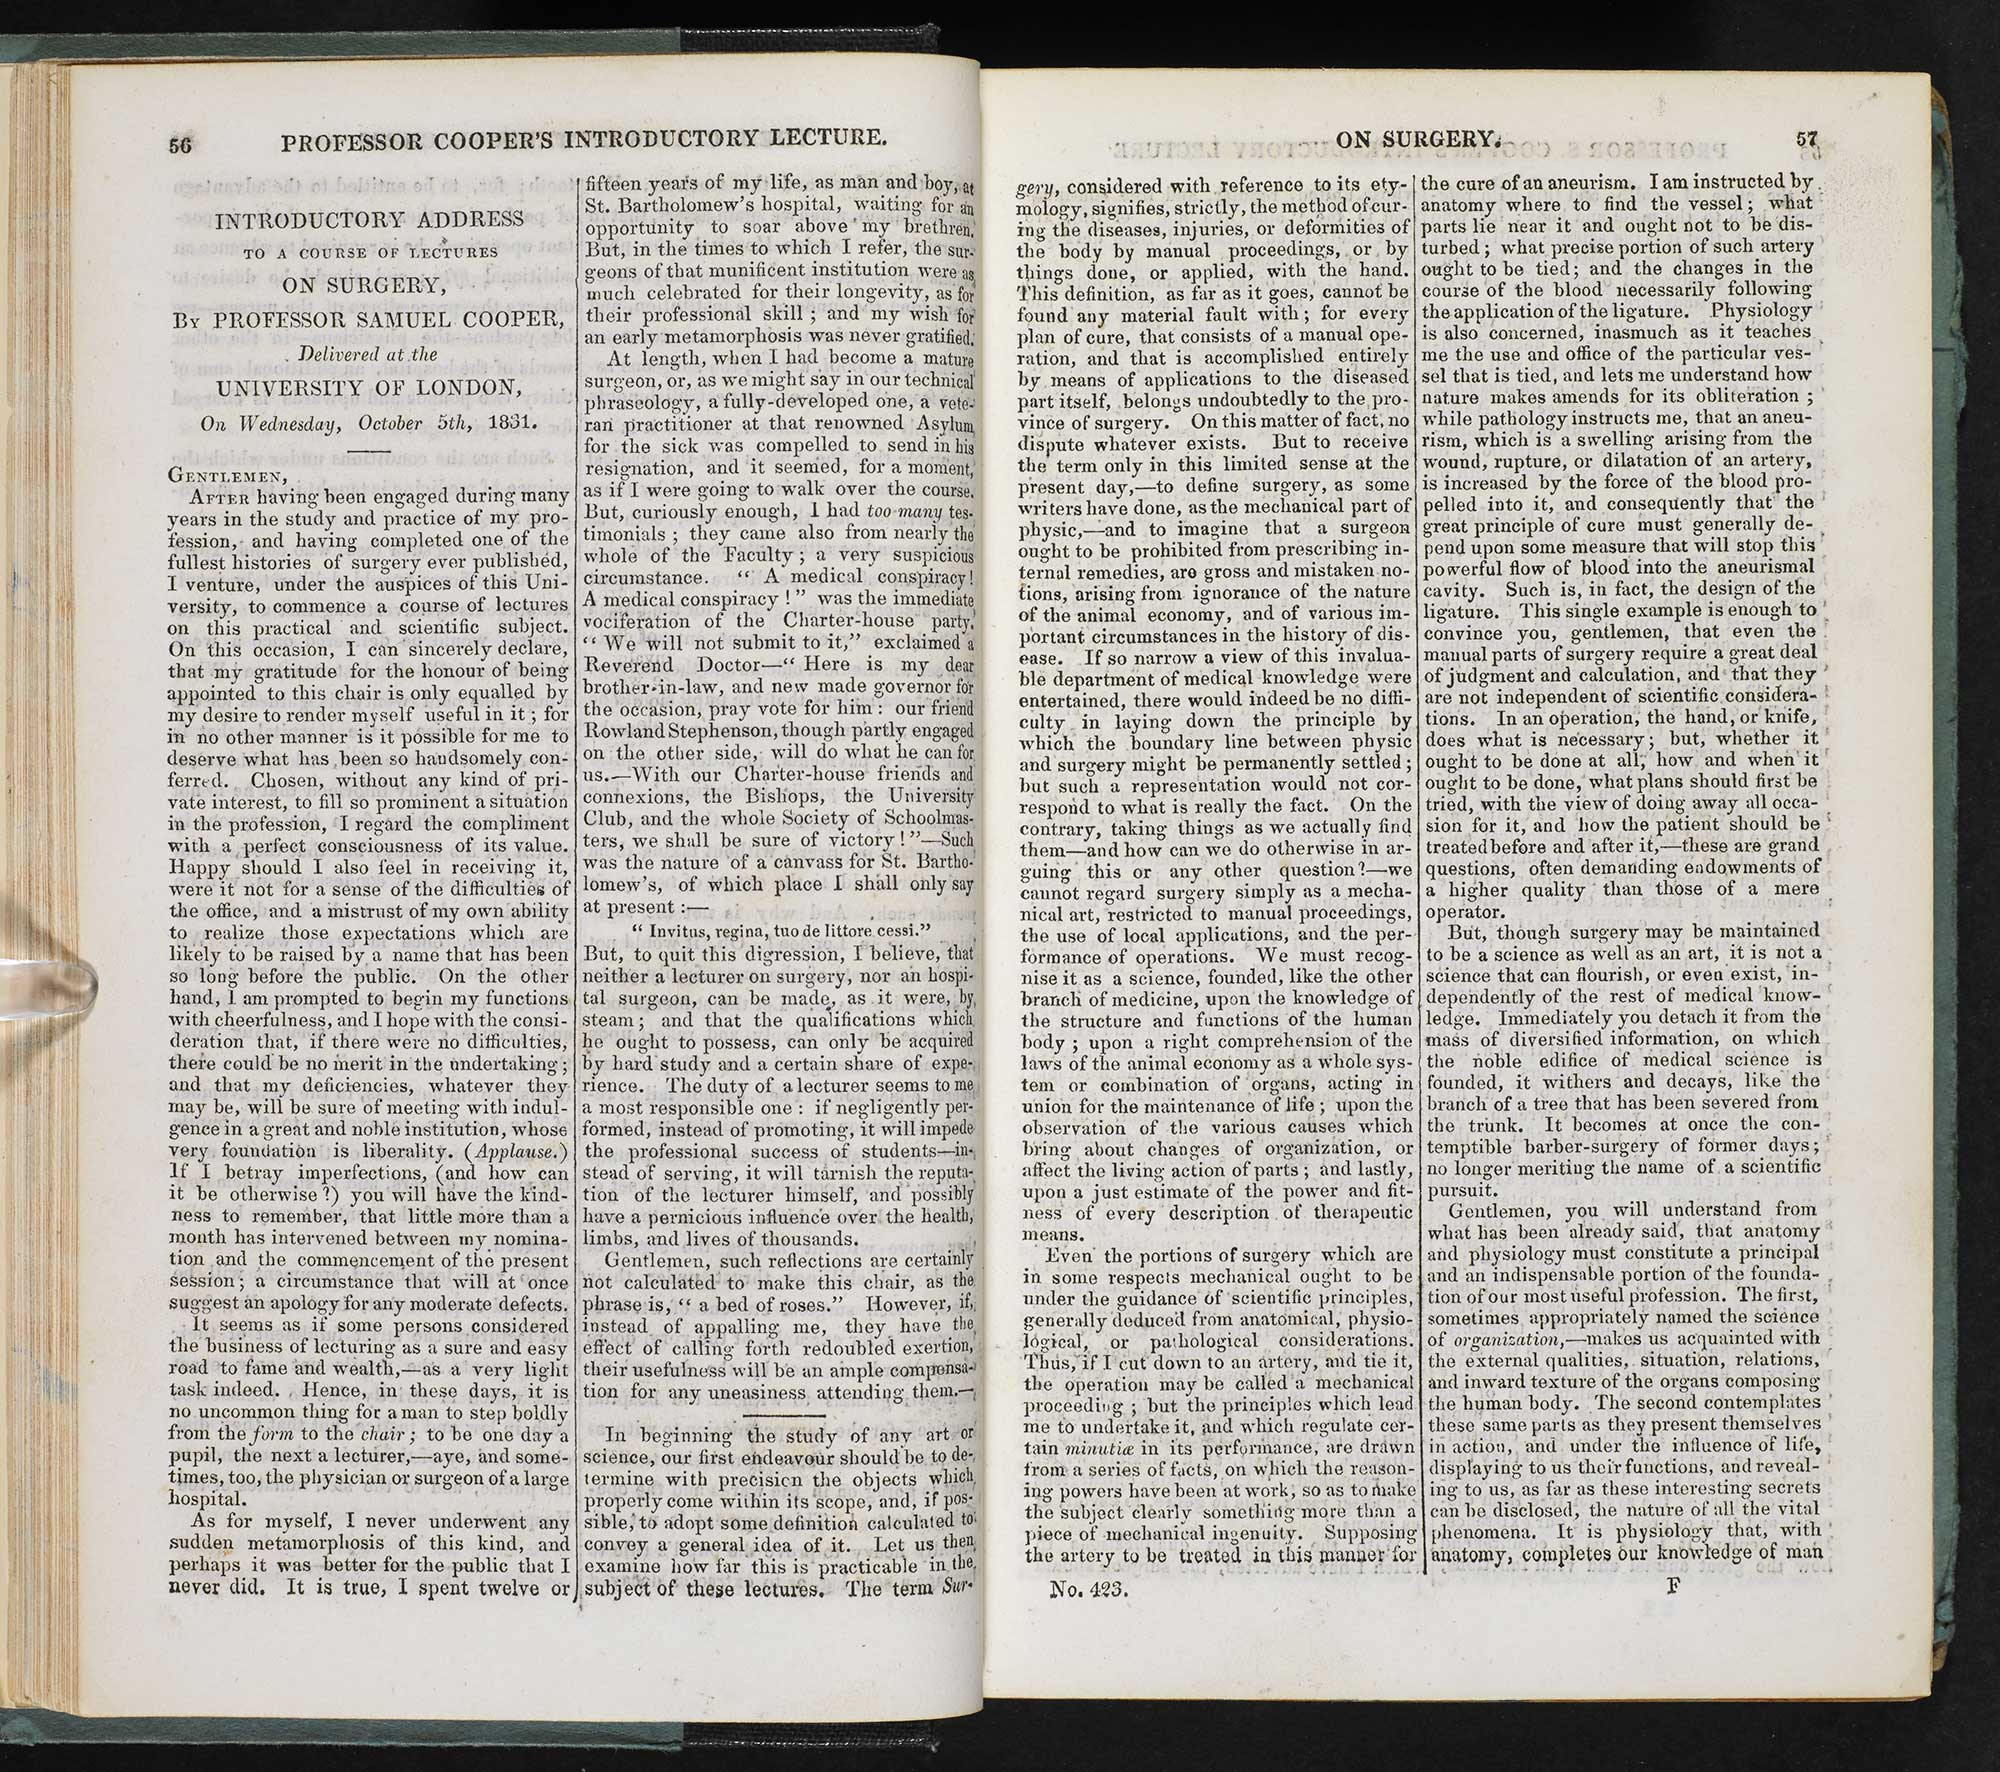 Issues of medical journal The Lancet, 1831-32 [page: 1831-1832 vol 1. pp. 56-57]